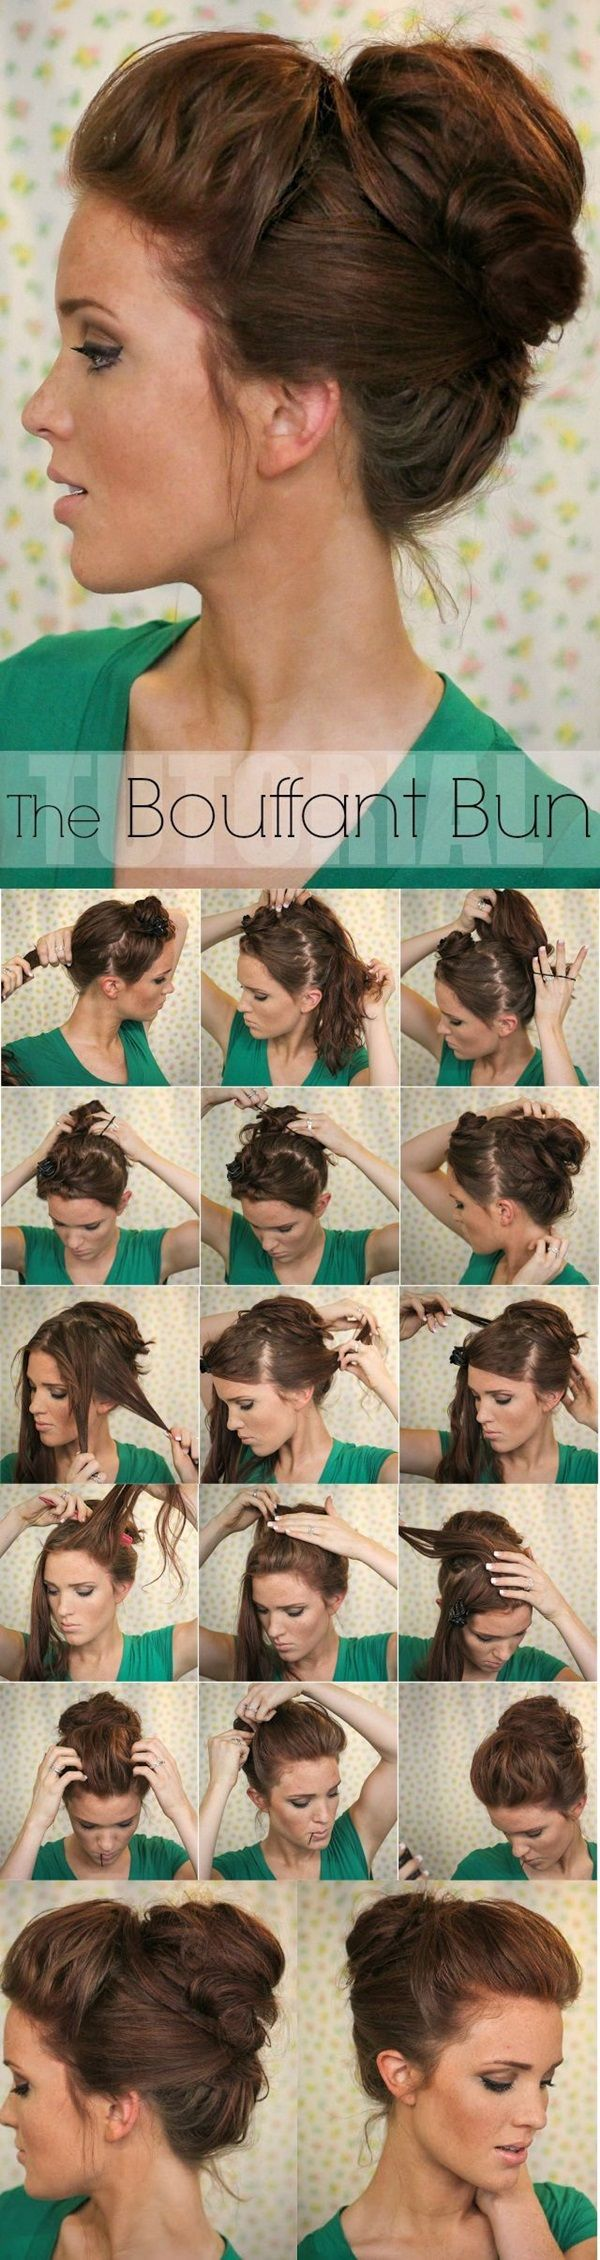 40 Quick Hairstyle Tutorials For Office Women Easy Updo Hairstyles Tutorials Hair Styles Long Hair Styles